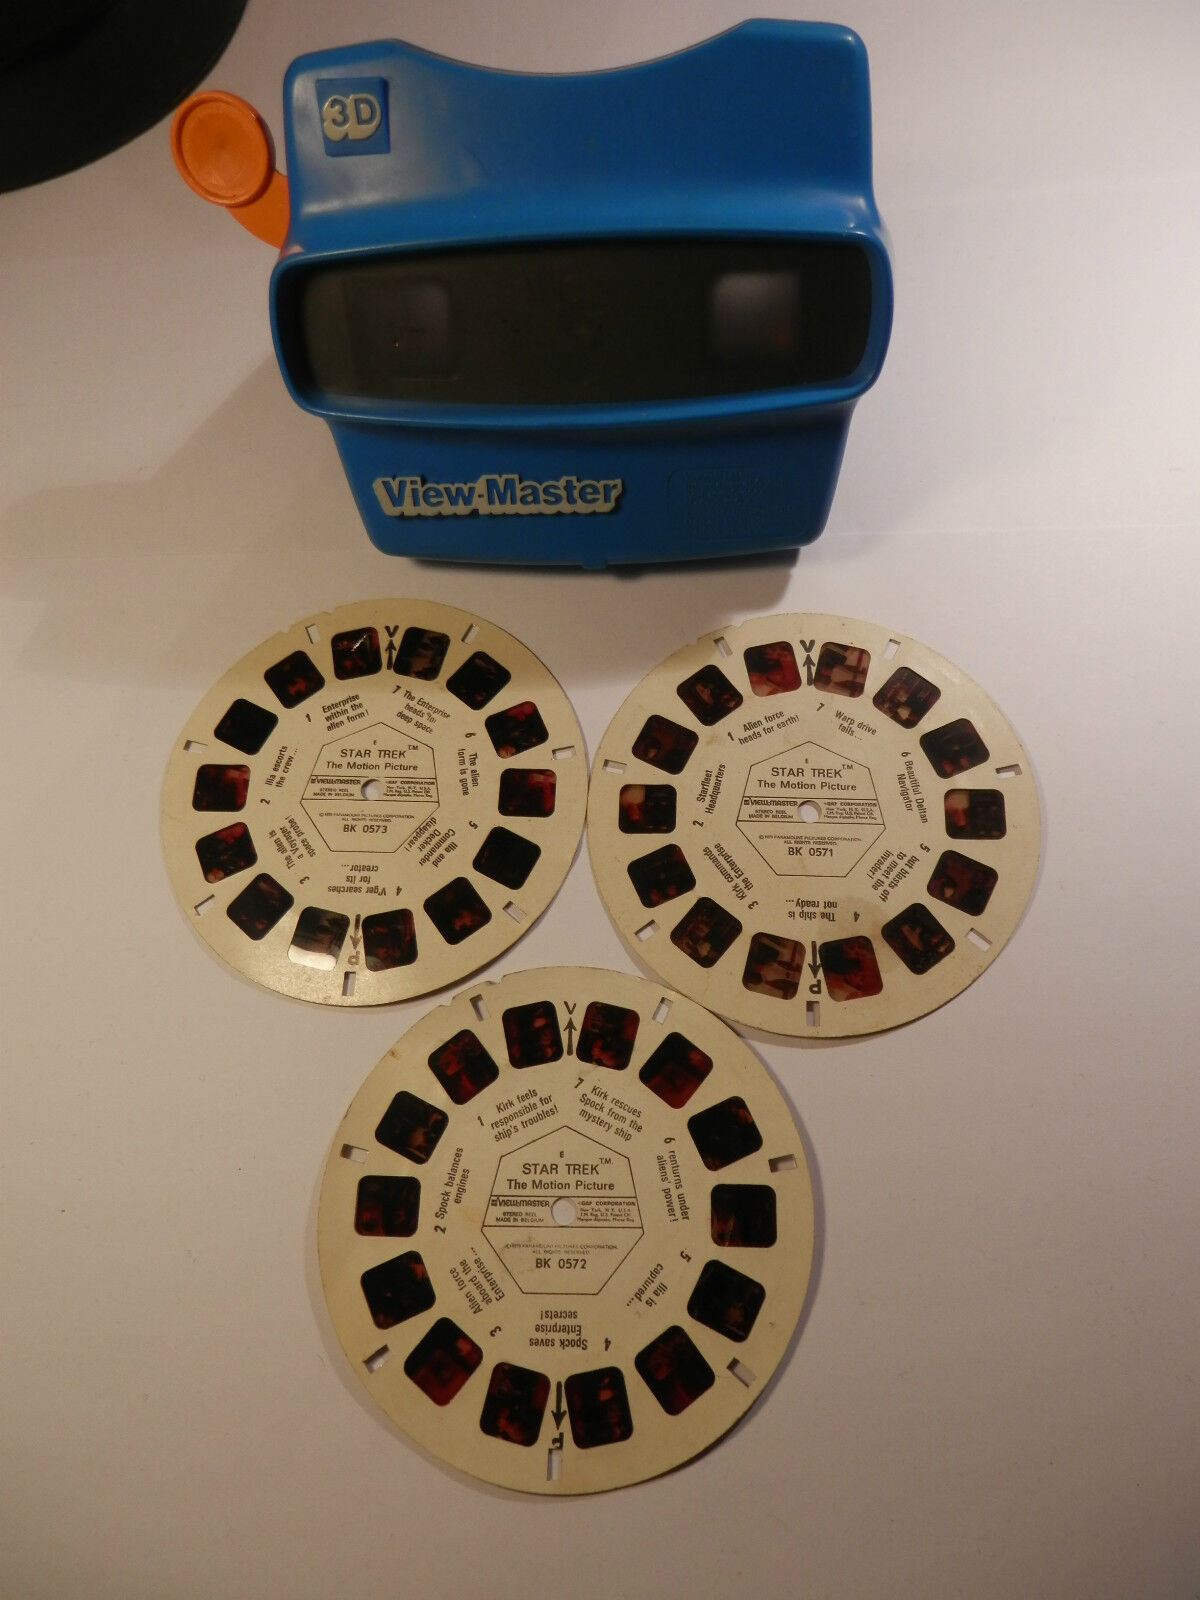 en promociones de estadios RARE SET OF 3 Estrella Estrella Estrella Trek The Motion Picture with Viewmaster BK0572 BK0571 BK0573  ahorra 50% -75% de descuento